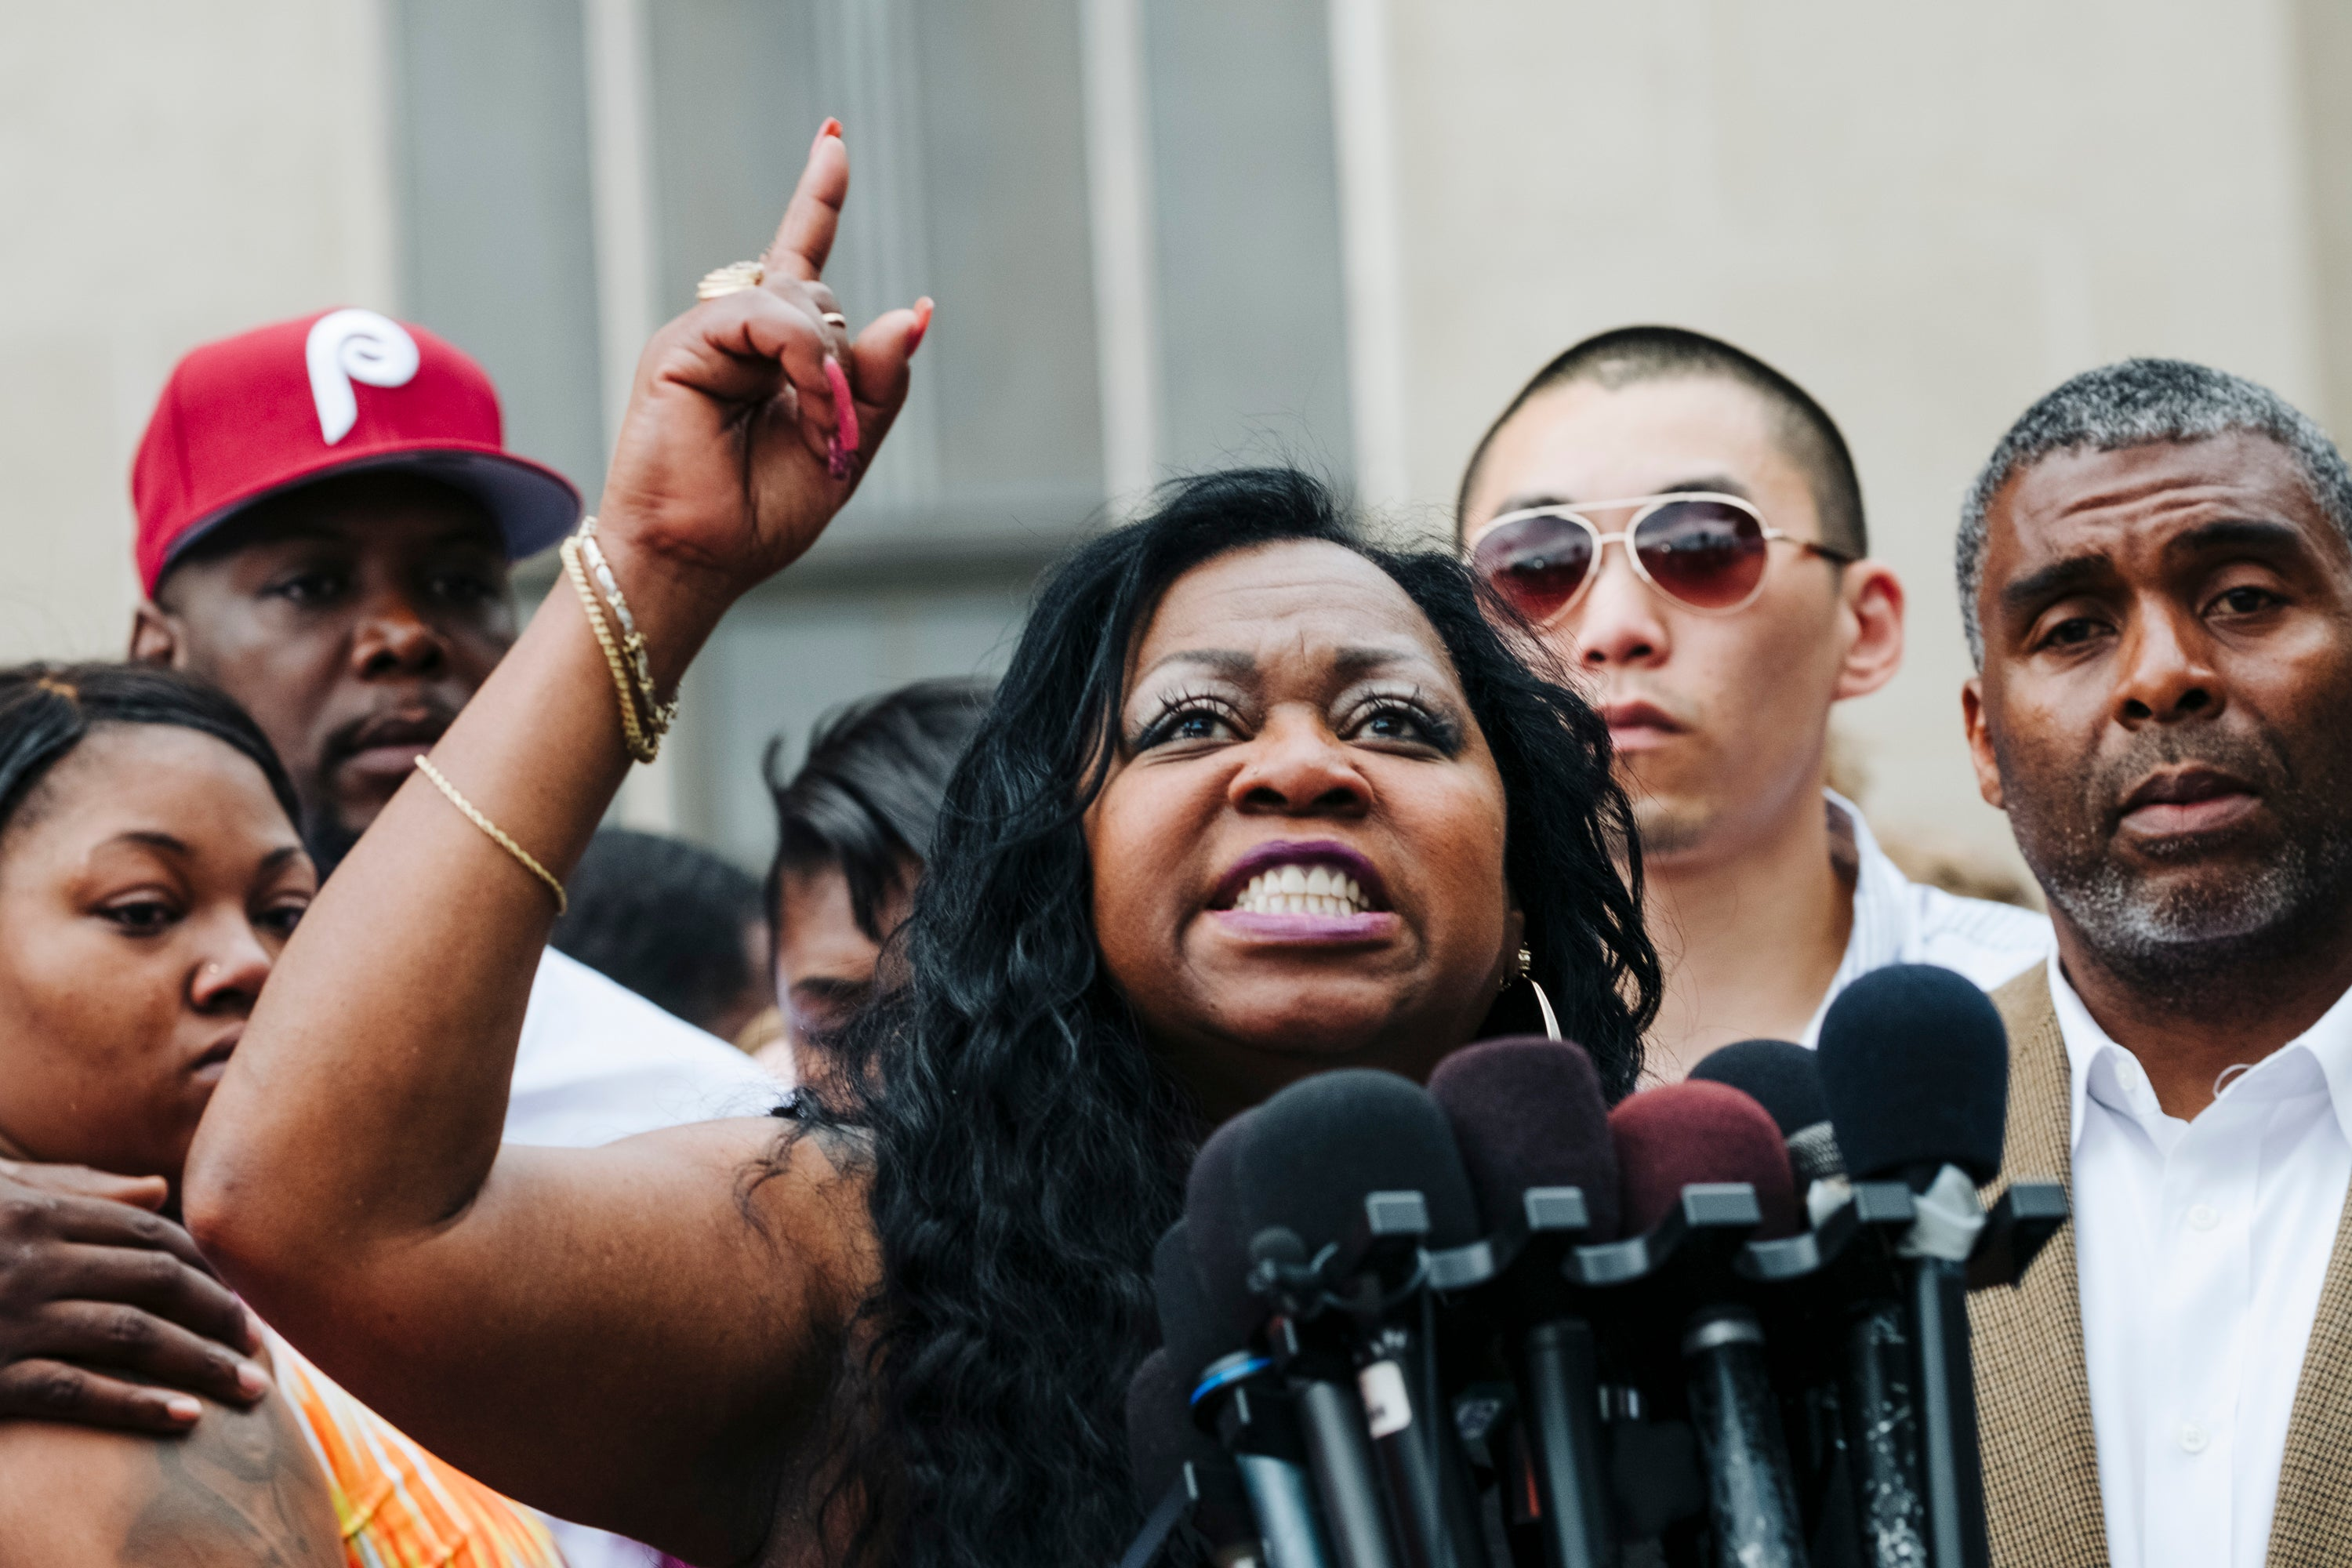 Philando Castile's Mother: 'This City Killed My Son And The Murderer Got Away'